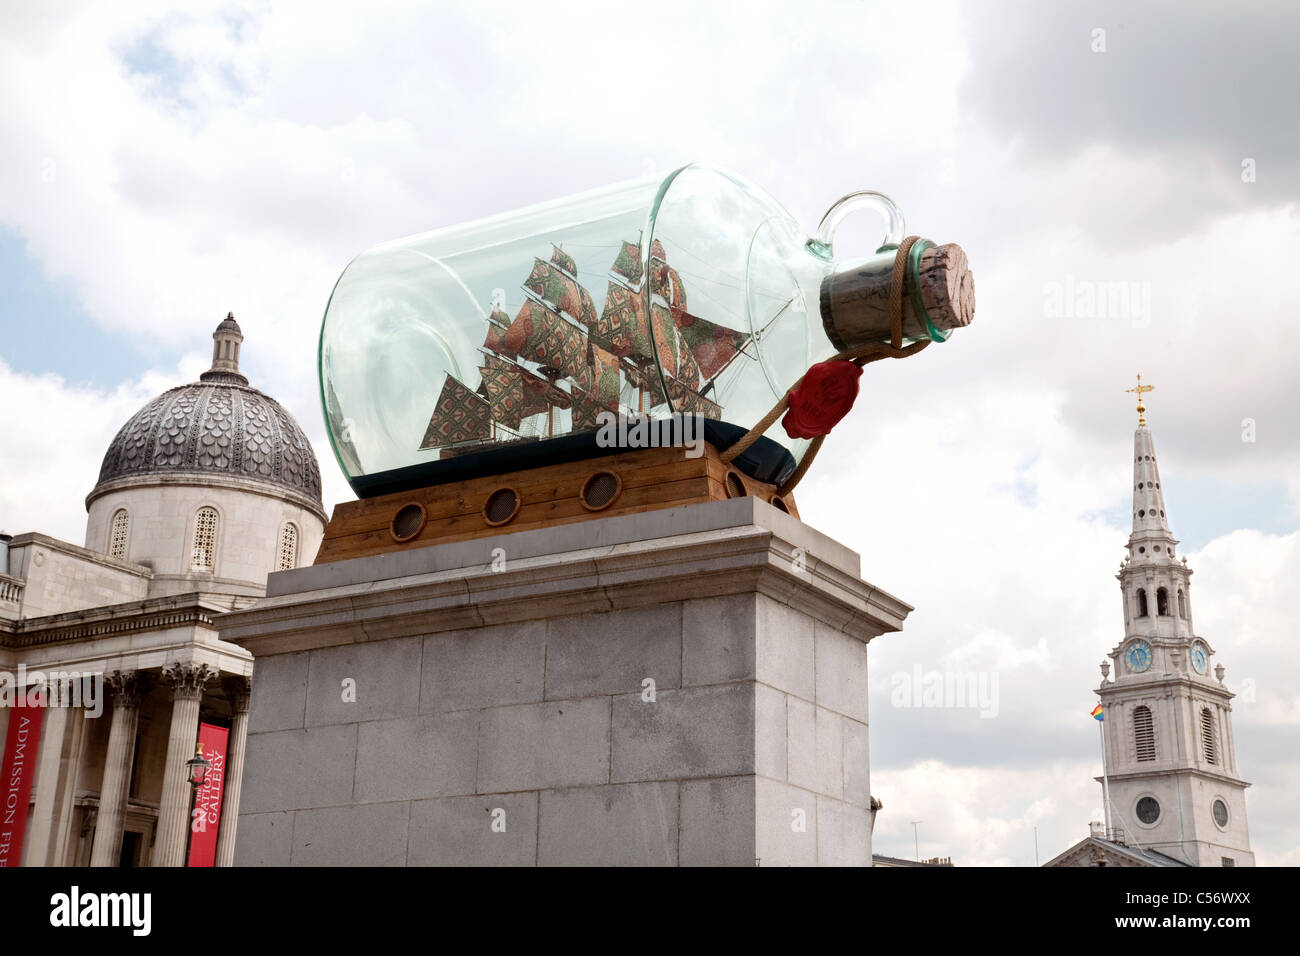 A large ship in a bottle (Nelsons flagship 'Victory' by Yinka Shonibare) on  the fourth plinth, Trafalgar - Stock Image